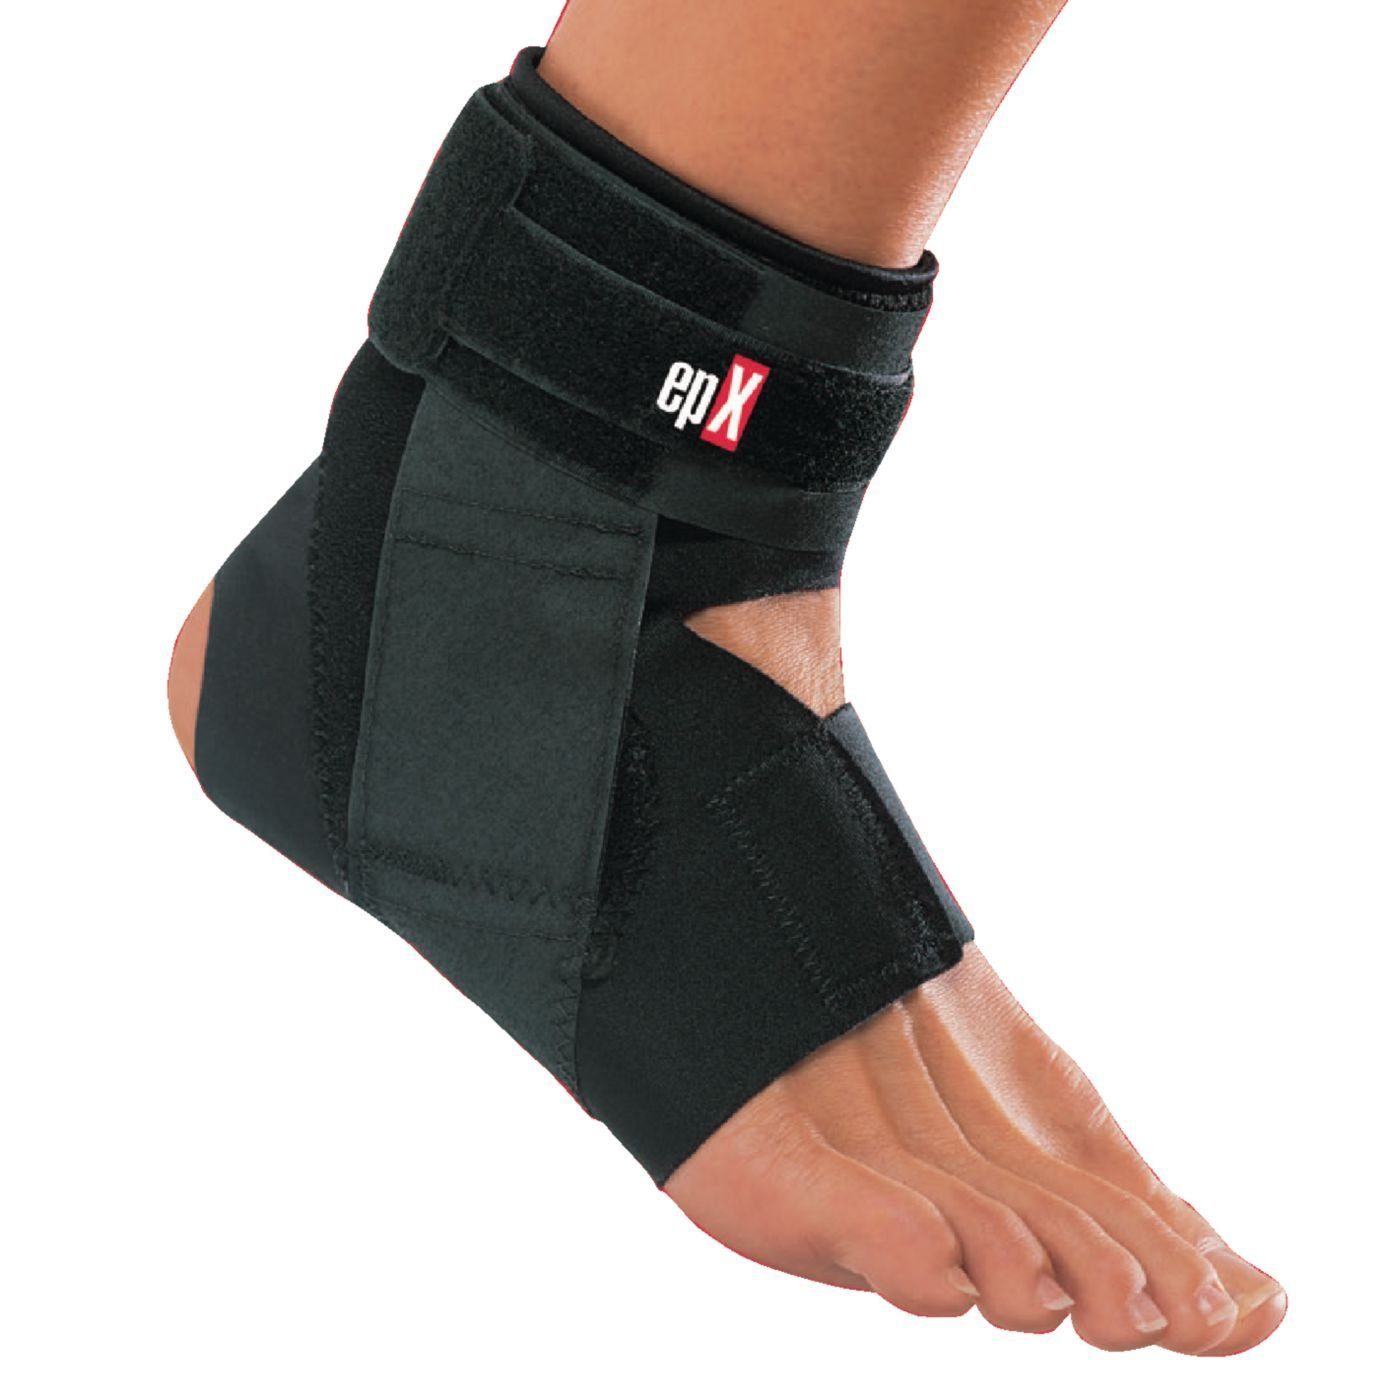 epX V-Lock Ankle Ranking integrated 1st place Stabilizer - 7